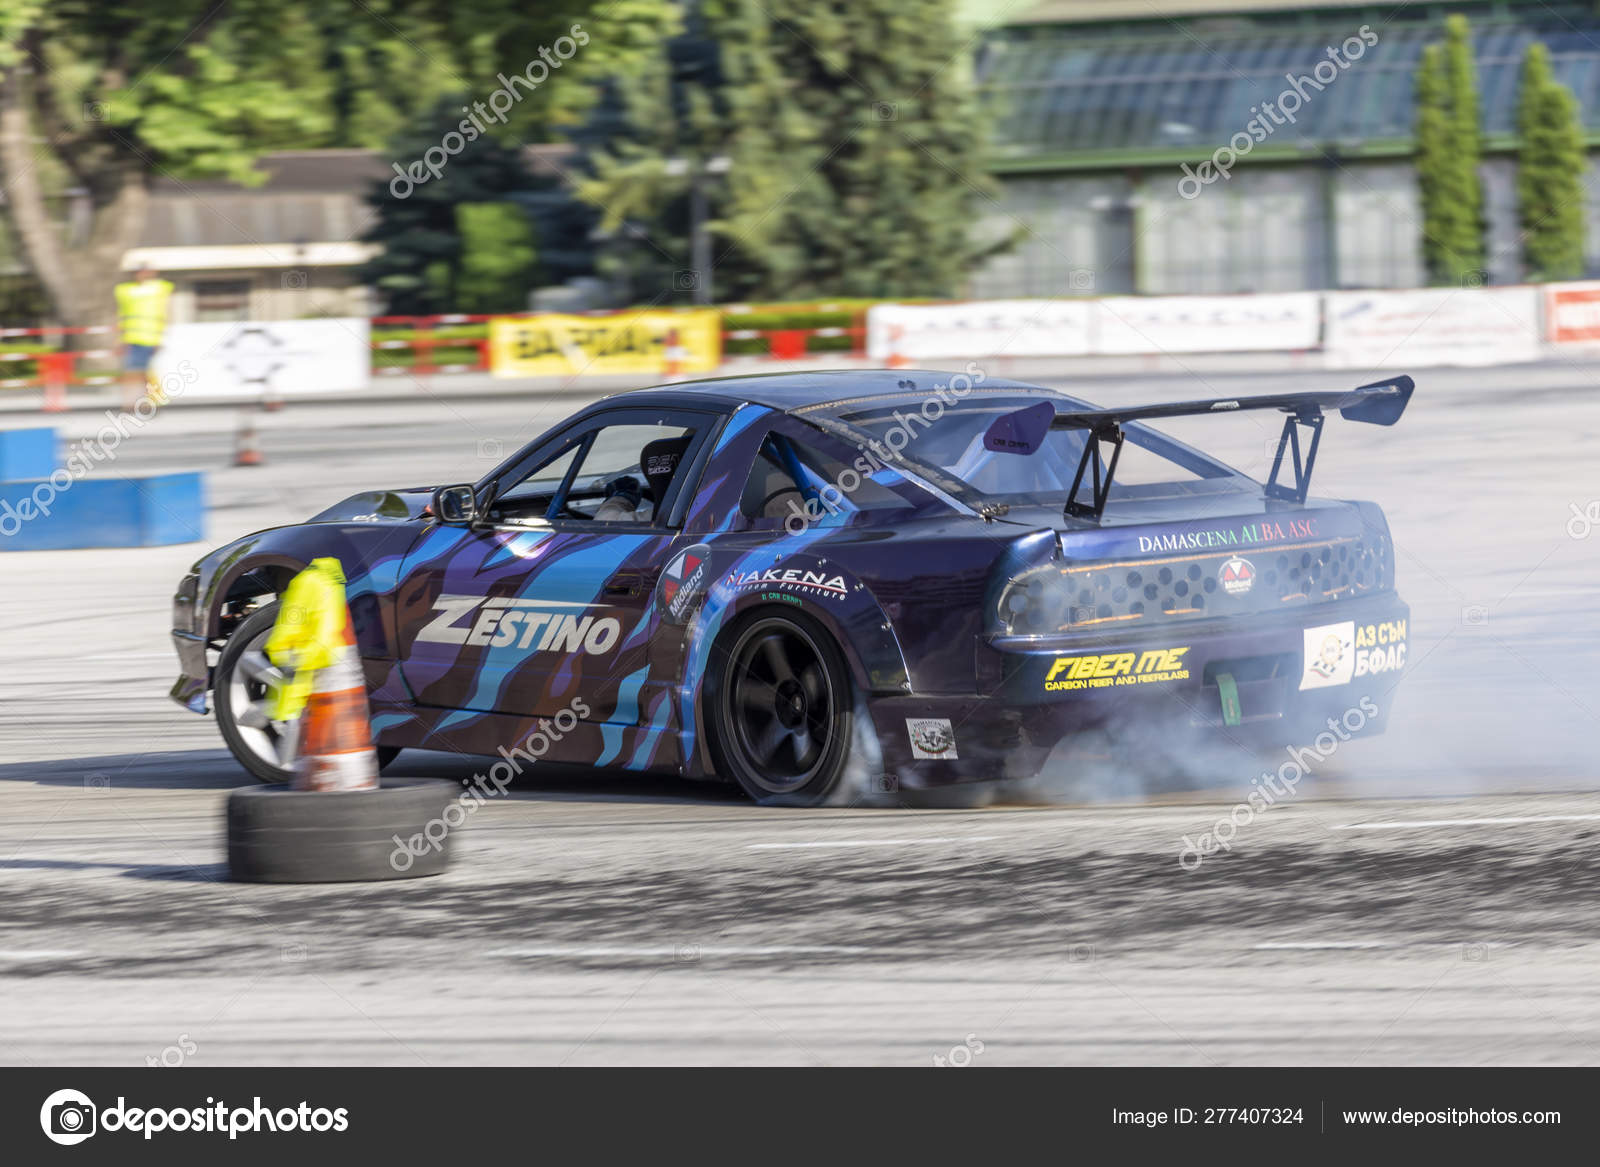 Car Drifting Race Competition On A Track Stock Editorial Photo C Nikolay100 277407324